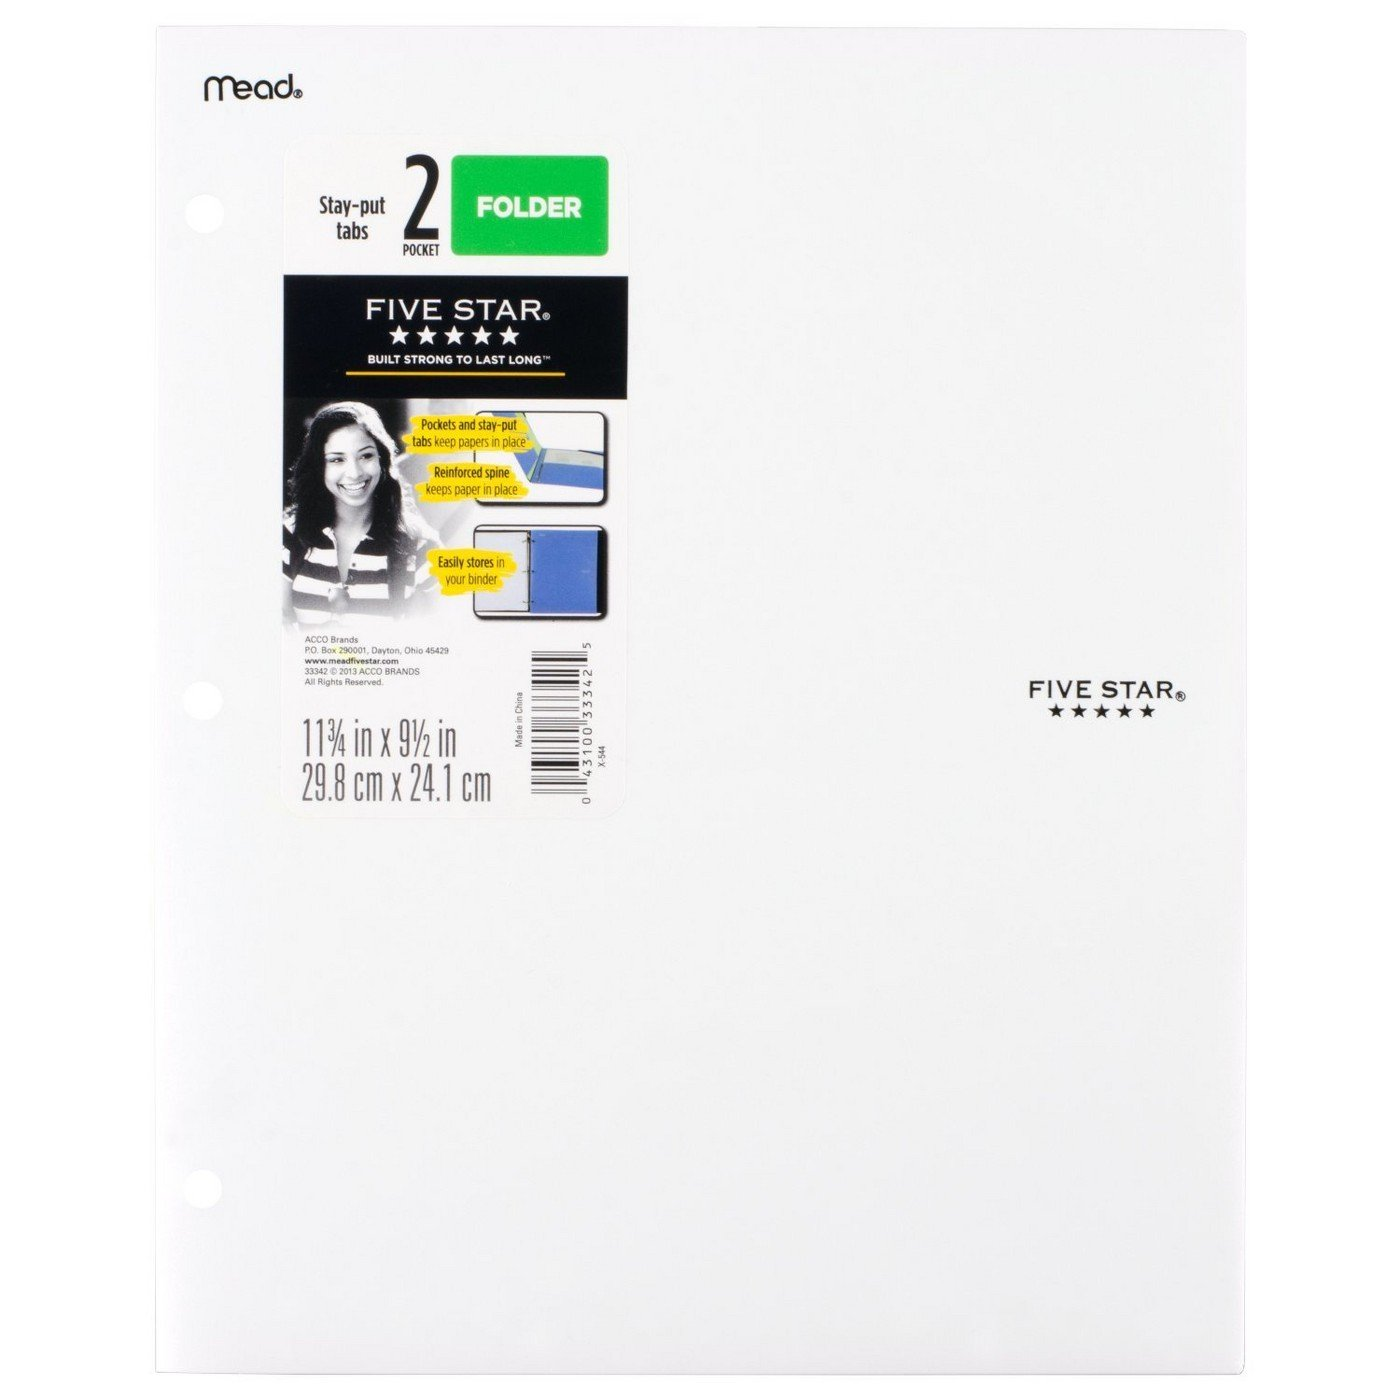 Five Star 2 - Pocket Folder, Stay-Put Tabs, Plastic. No Prongs (White)